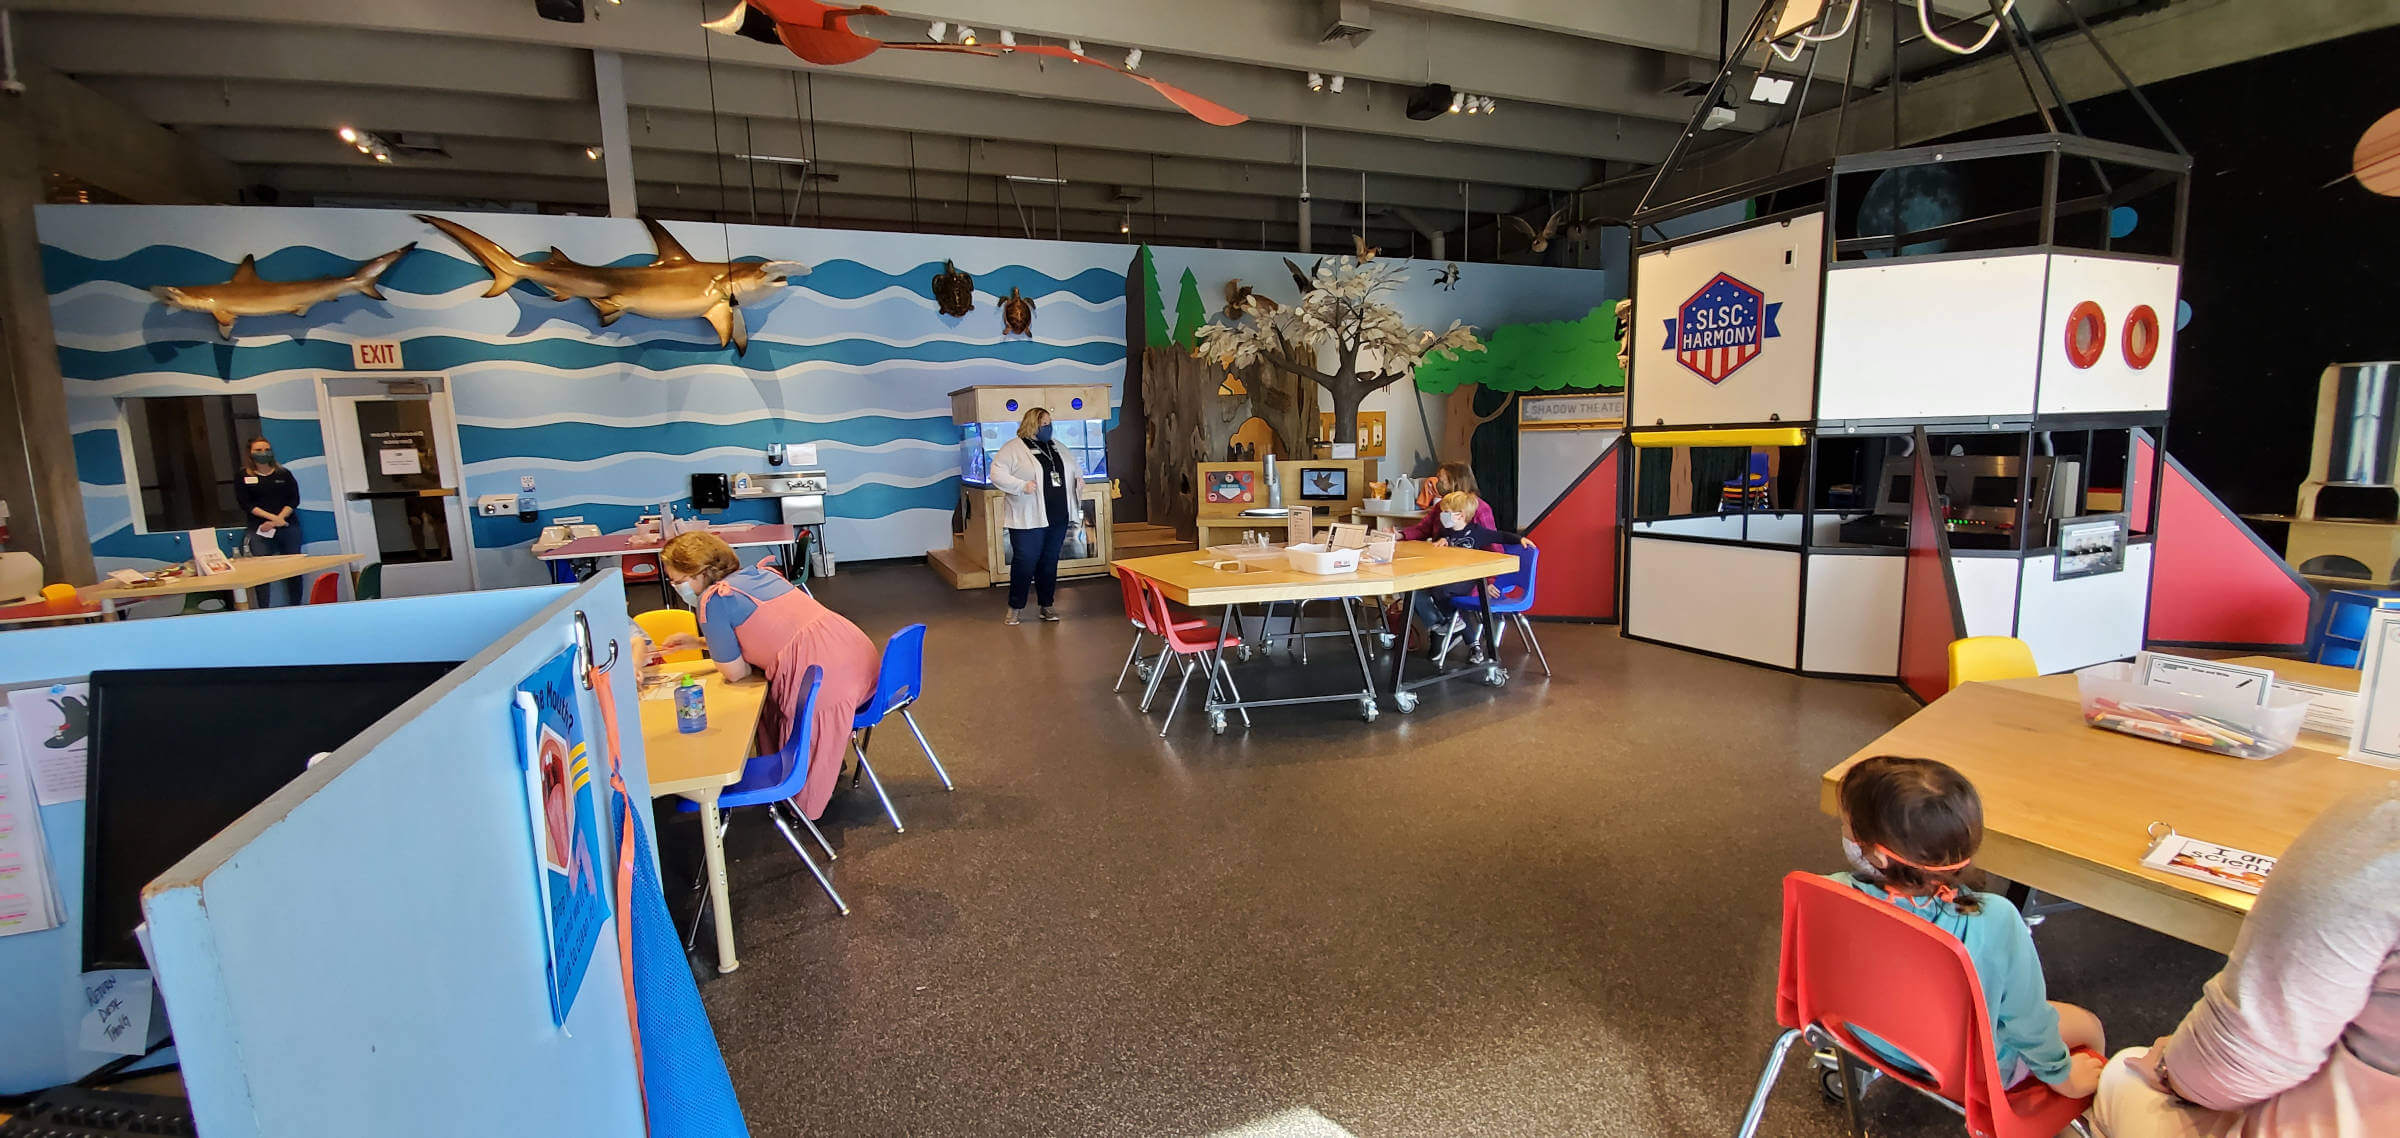 Discover Science with Me at the Discovery Room